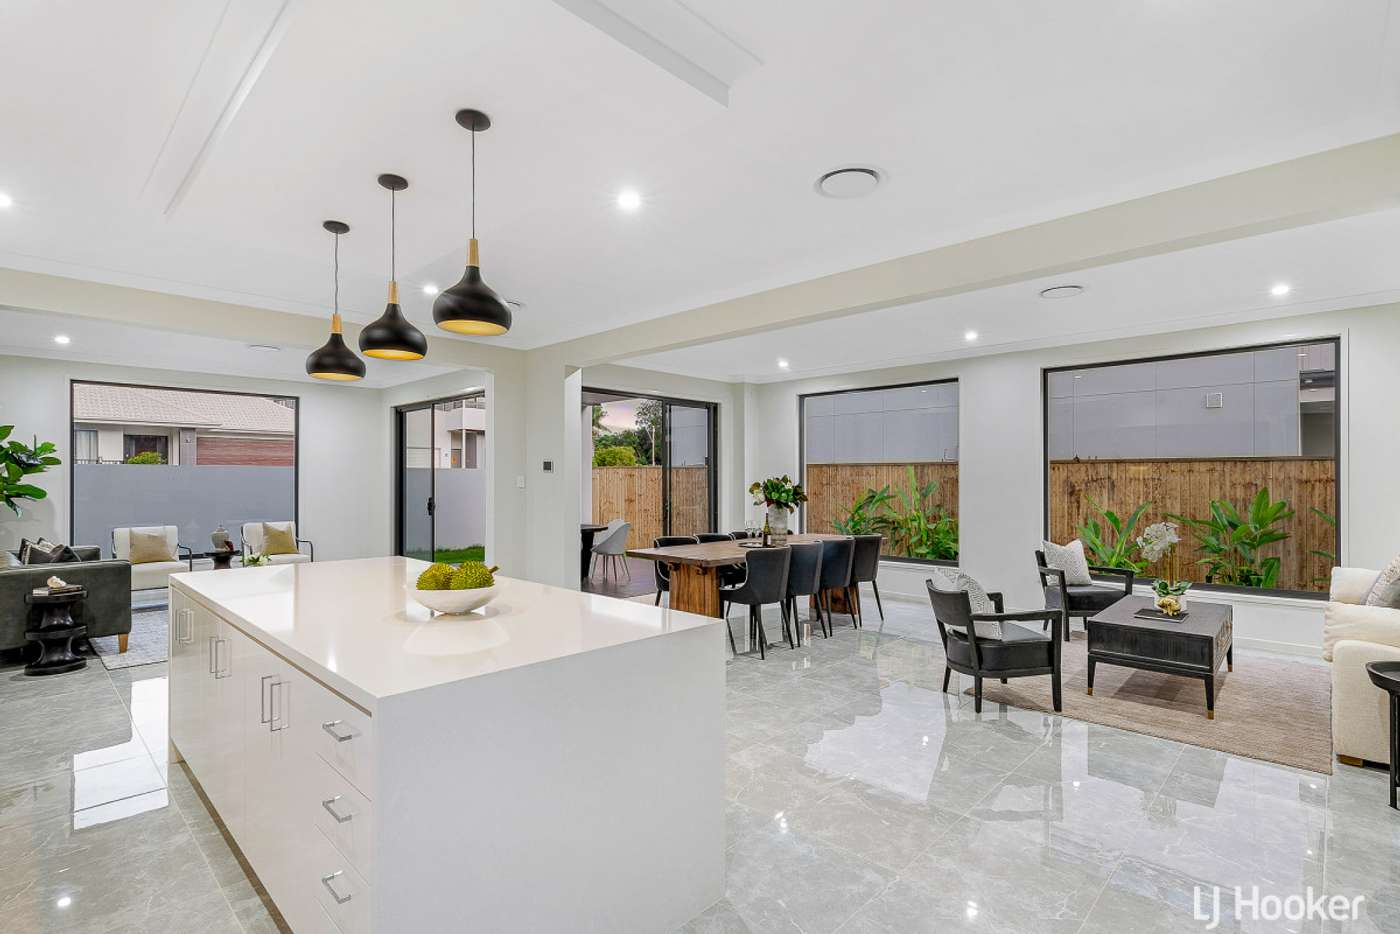 Fifth view of Homely house listing, 2 Amethyst Street, Rochedale QLD 4123